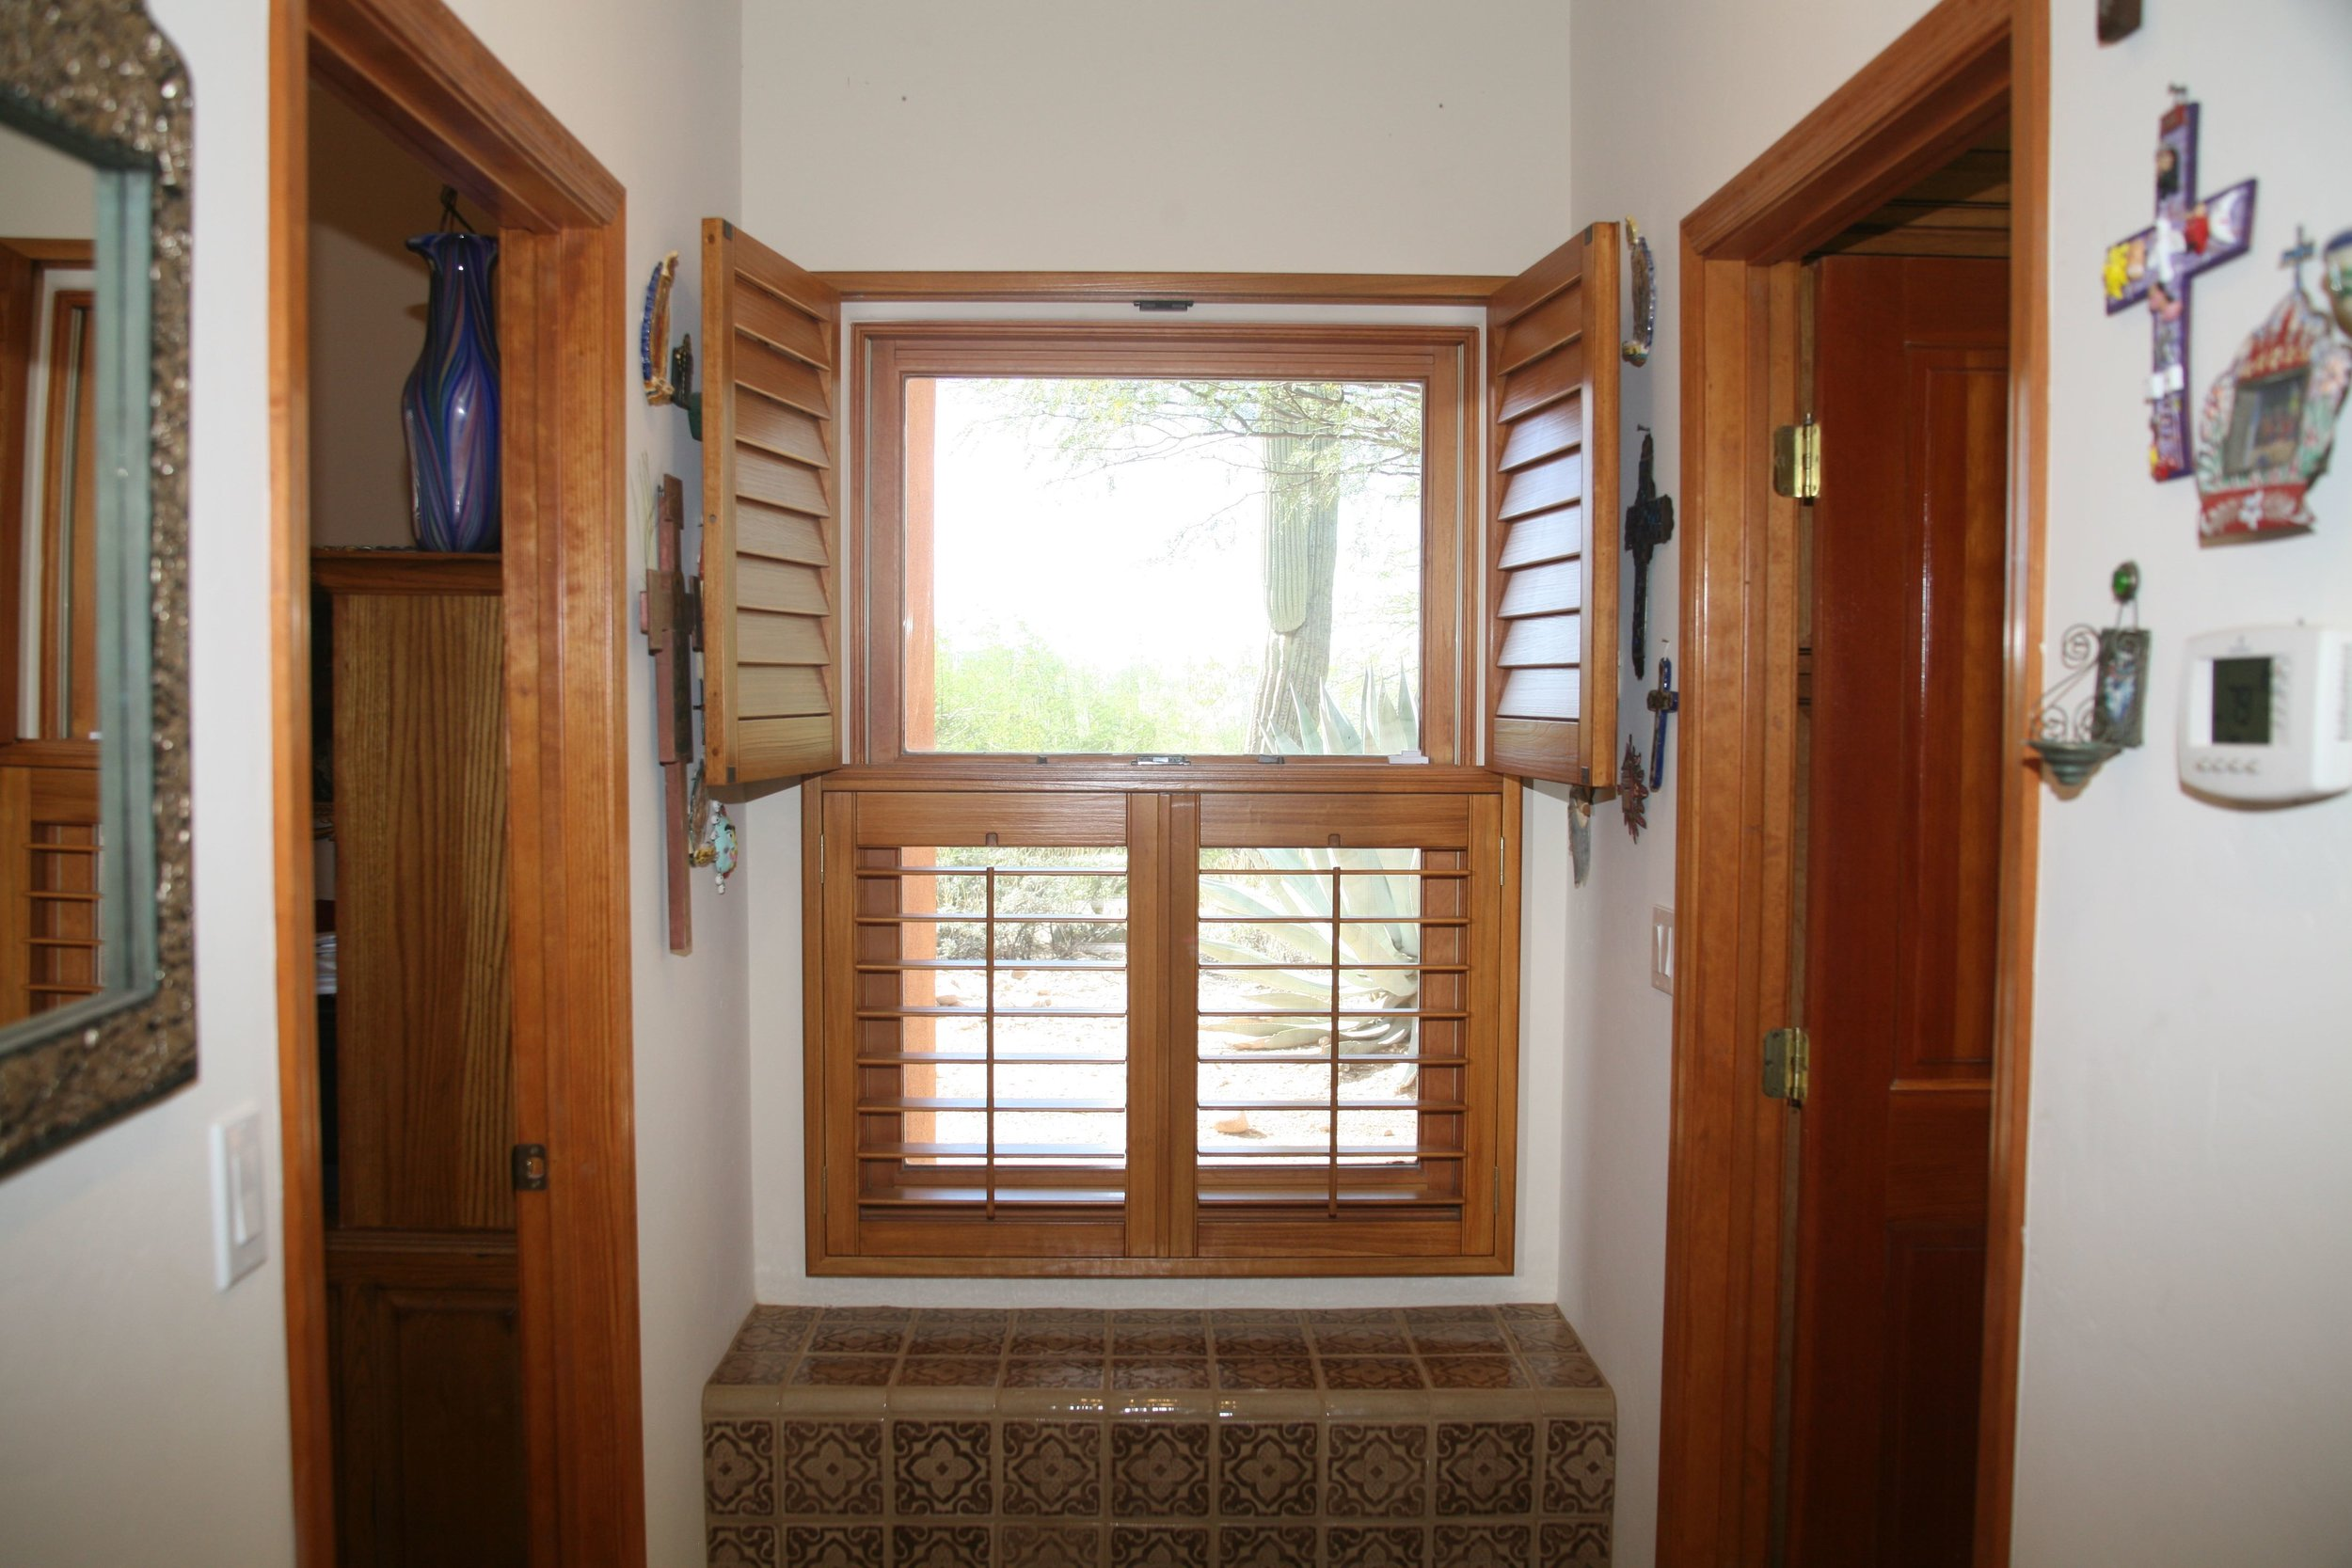 Double-hung shutters provide the option of opening the top or bottom for more light as needed.